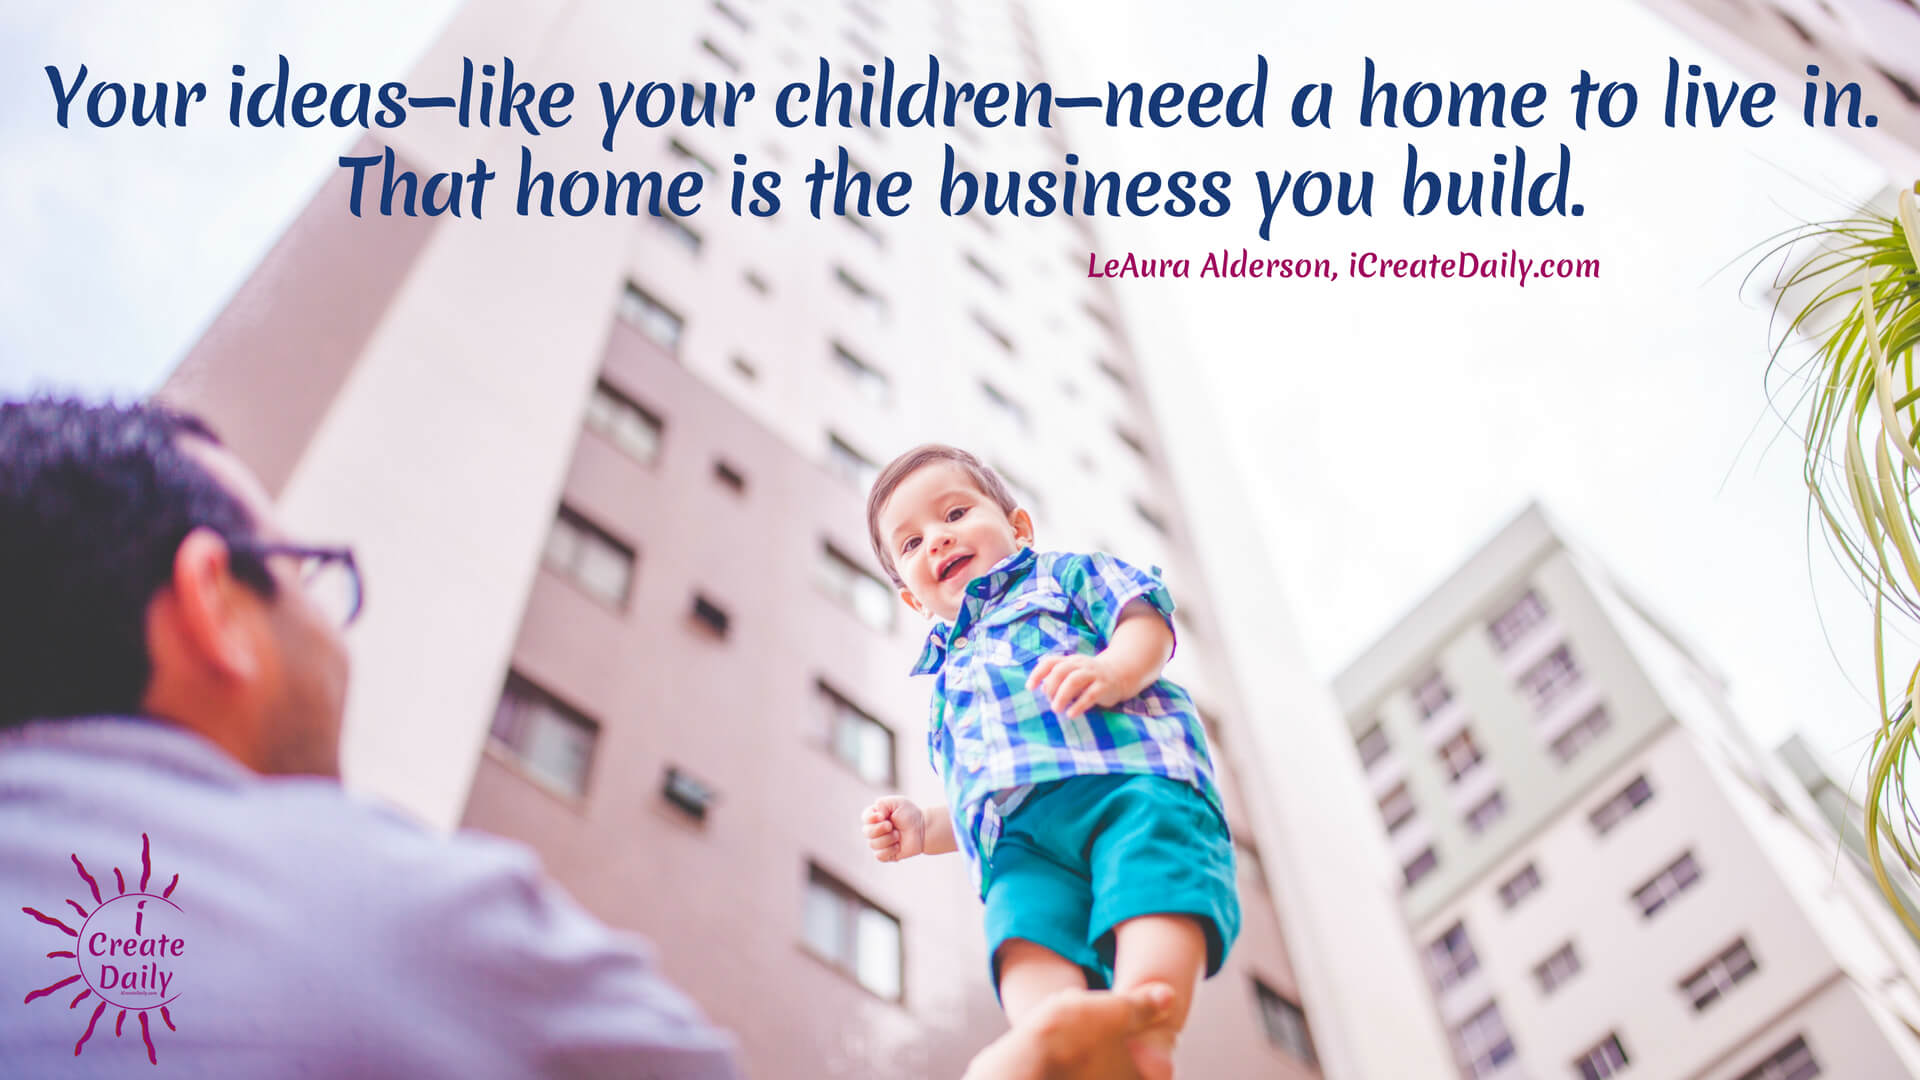 Good parenting is one of the hardest jobs on the planet, yet the task of guiding young souls is extraordinarily worthwhile. So are your ideas. So is your art. Extraordinarily worthwhile. For many of us, our creations and our business are like our children, so this bit of creative business advice continues in this parenting analogy. #quotes #journey #goals #creative